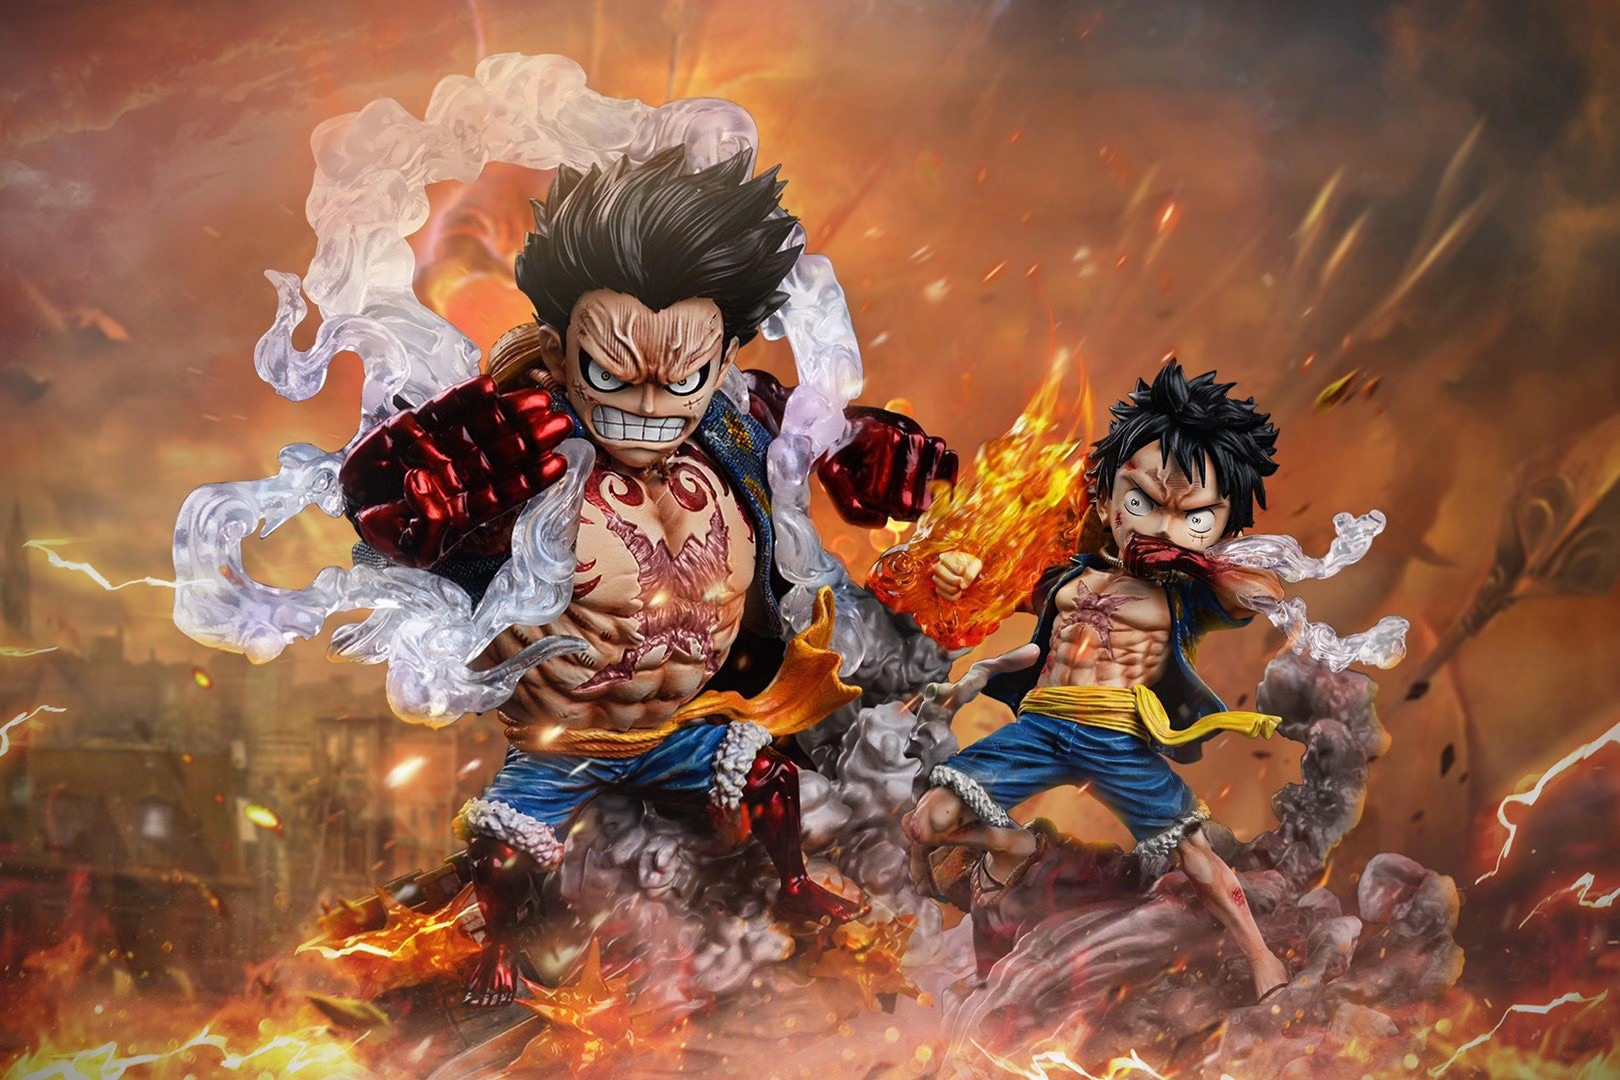 Luffy Gear 4 G5 Studio (มัดจำ)